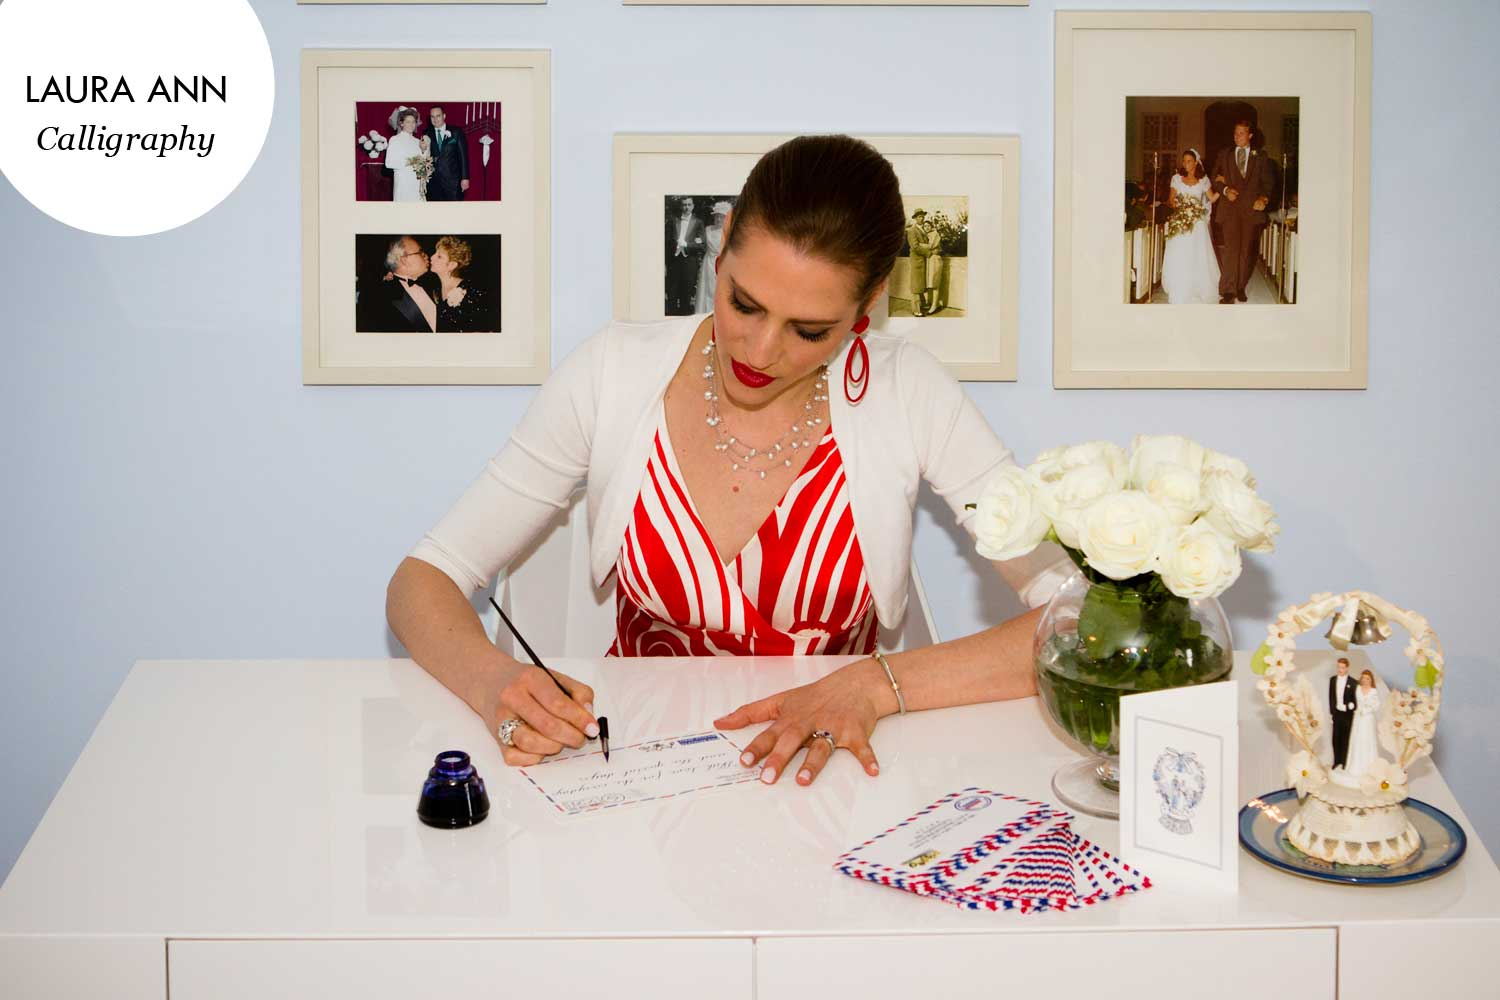 Artist Laura Elbogen brings the old world charm of hand calligraphy to modern day correspondence.